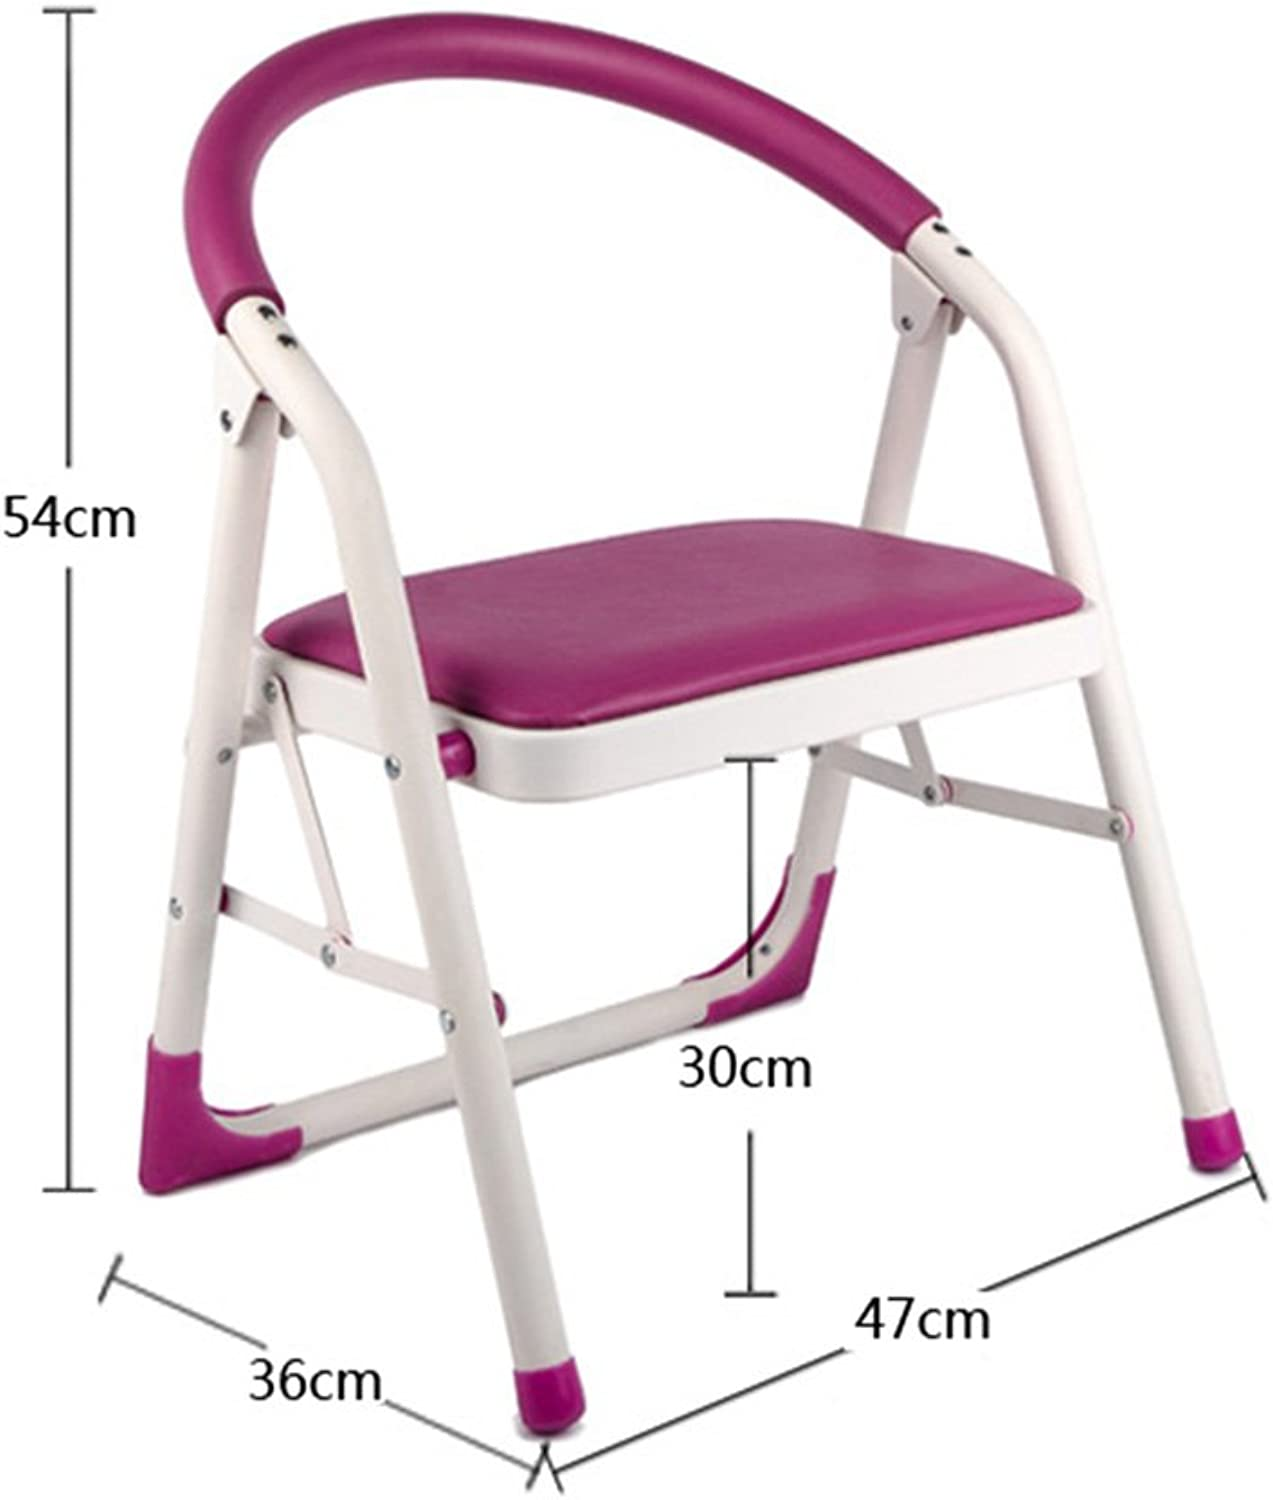 JIEJIEHAO Step stool Home Step stool Single layer Ladder with handrail Multifunction Folding Ascend chair (color   PINK)